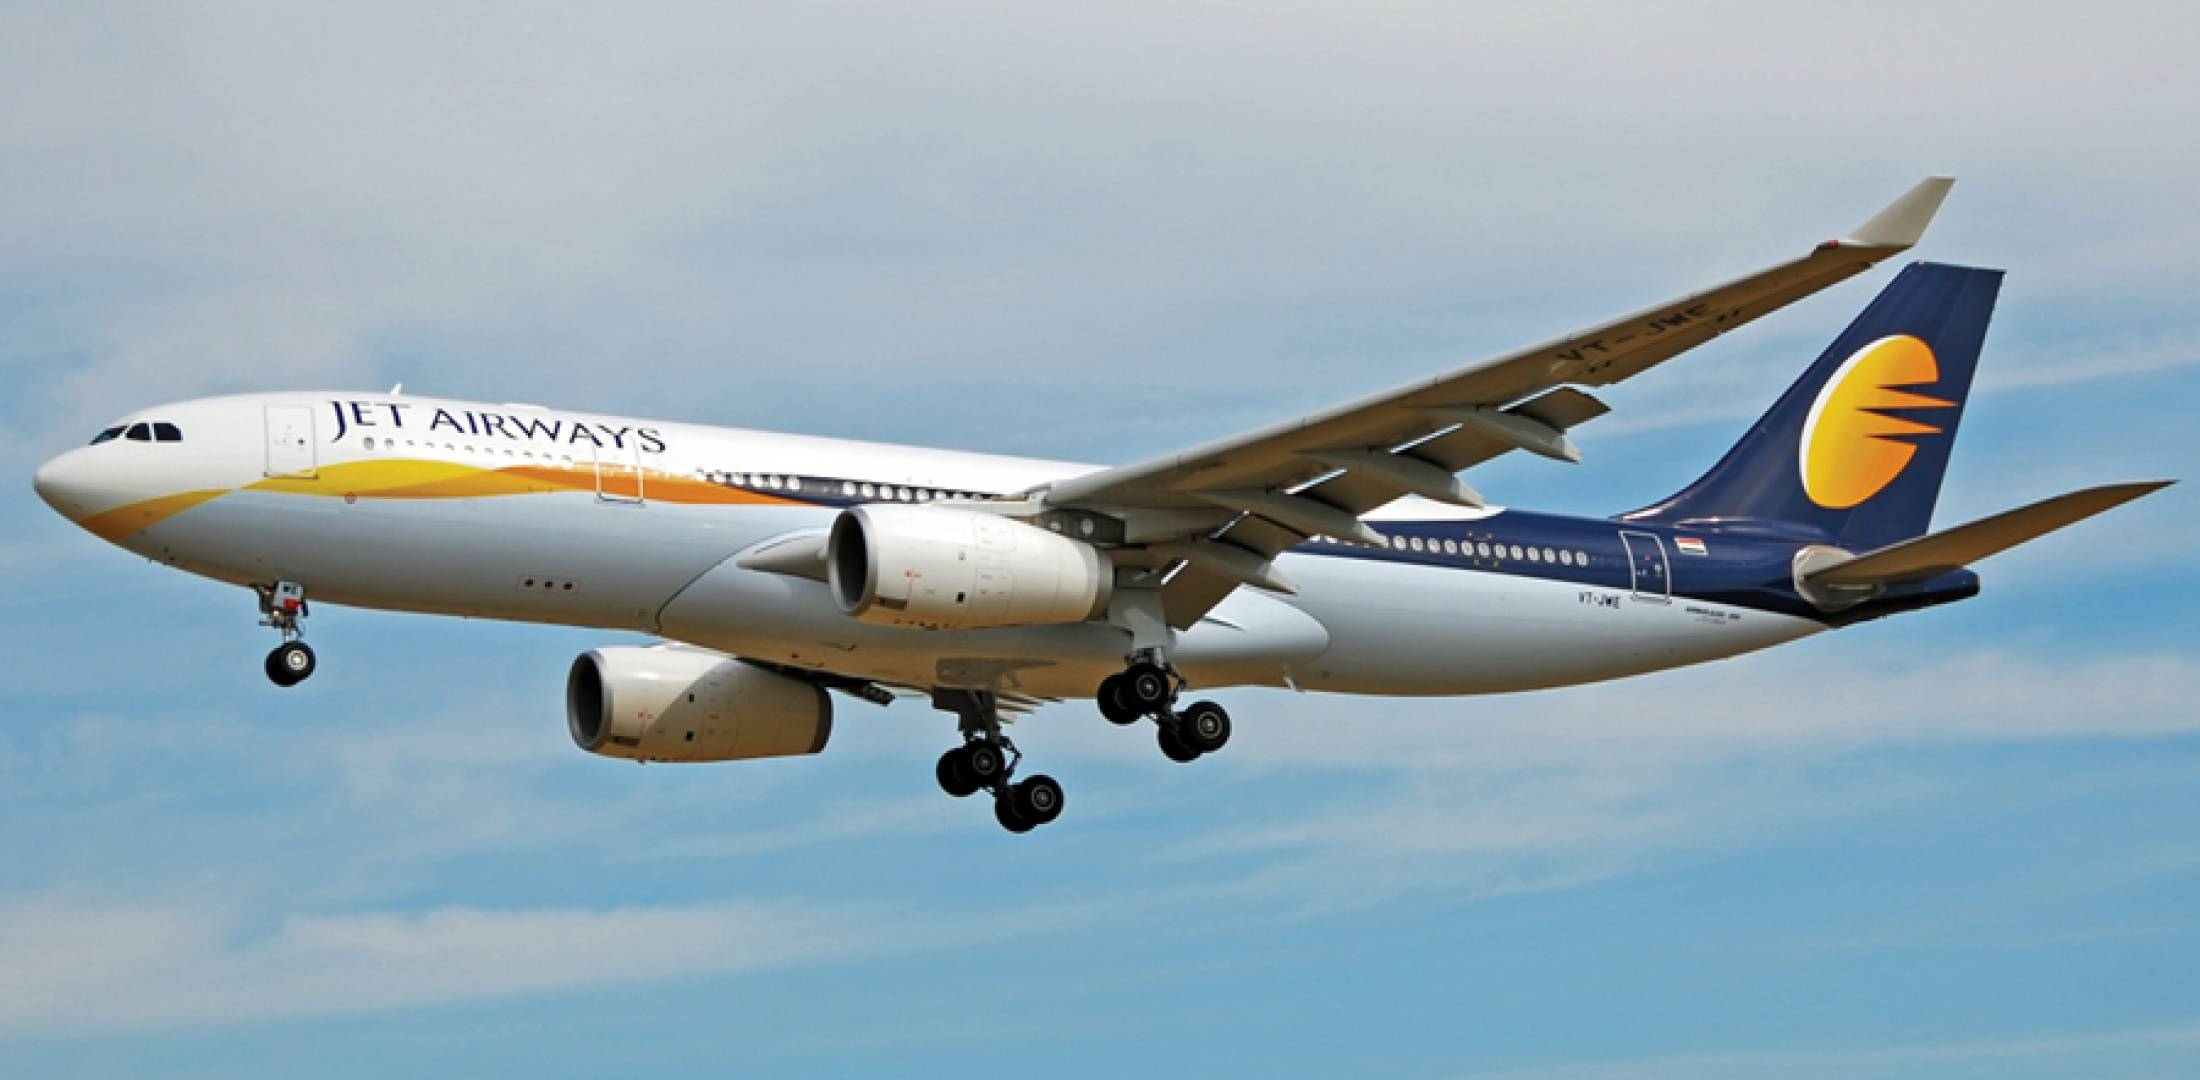 Jet Airways is not yet a member of AAPA, but it has expressed an interest in the association, which addresses a wide range of aviation industry issues.